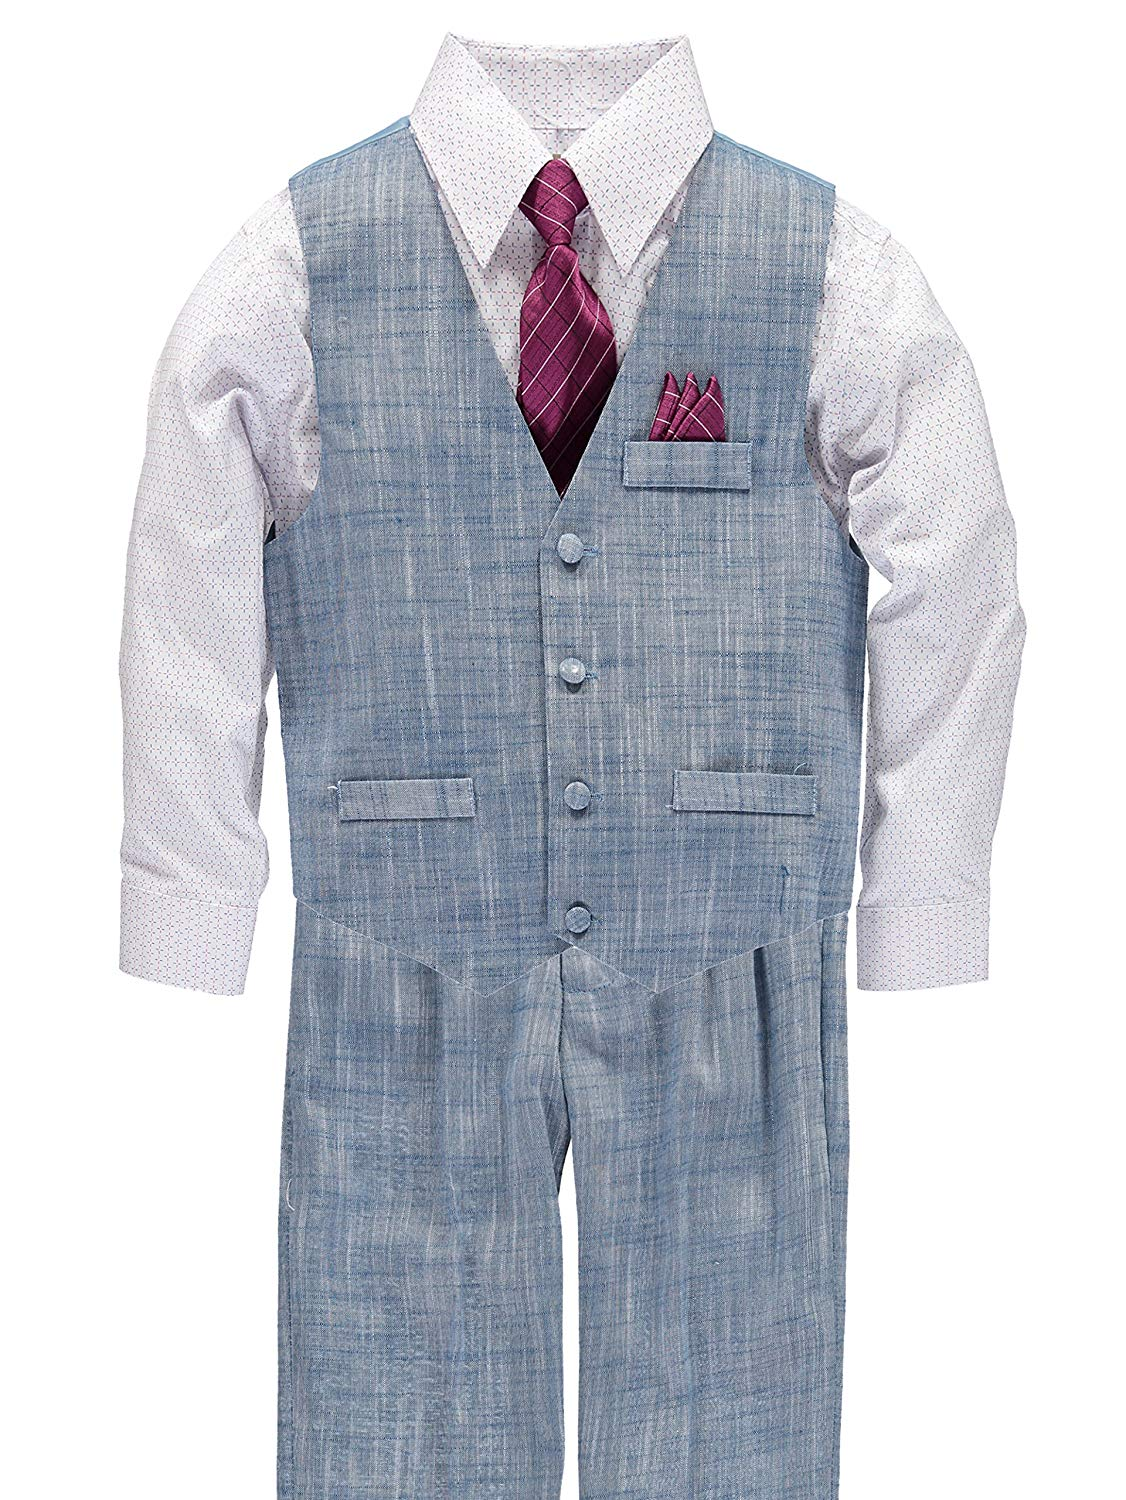 4e6847f58 Cheap Blue Suit Boys, find Blue Suit Boys deals on line at Alibaba.com